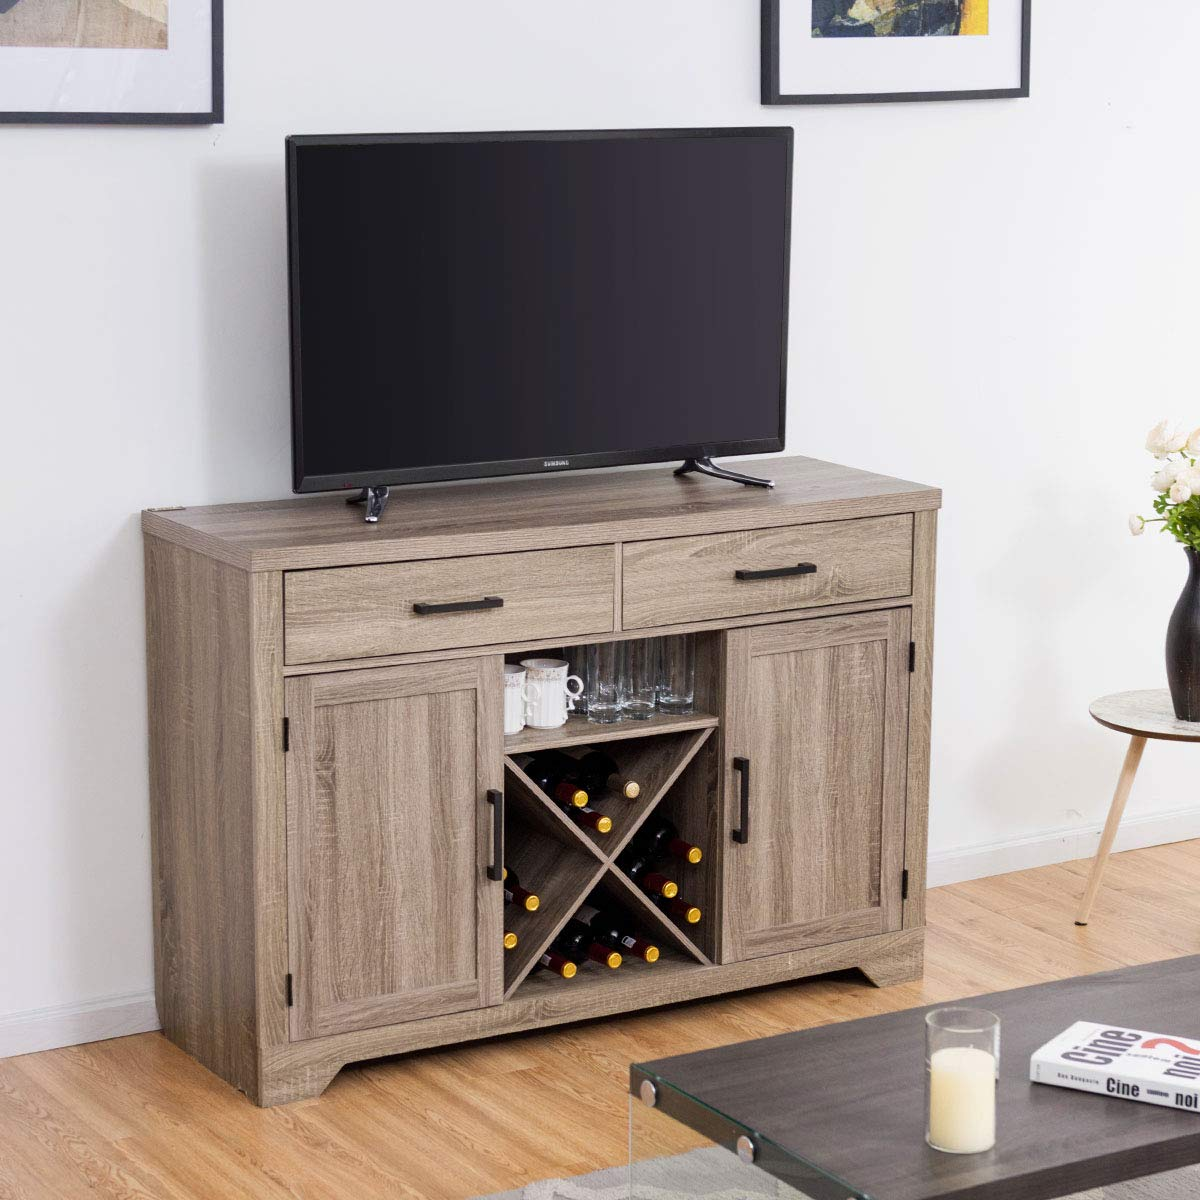 Giantex Buffet Cabinet Sideboard with Two Drawers Two Cabinets One Shelf and 4 Bottle Wine Rack Dining Room Home Furniture Console Storage Cabinet, Natural by Giantex (Image #3)